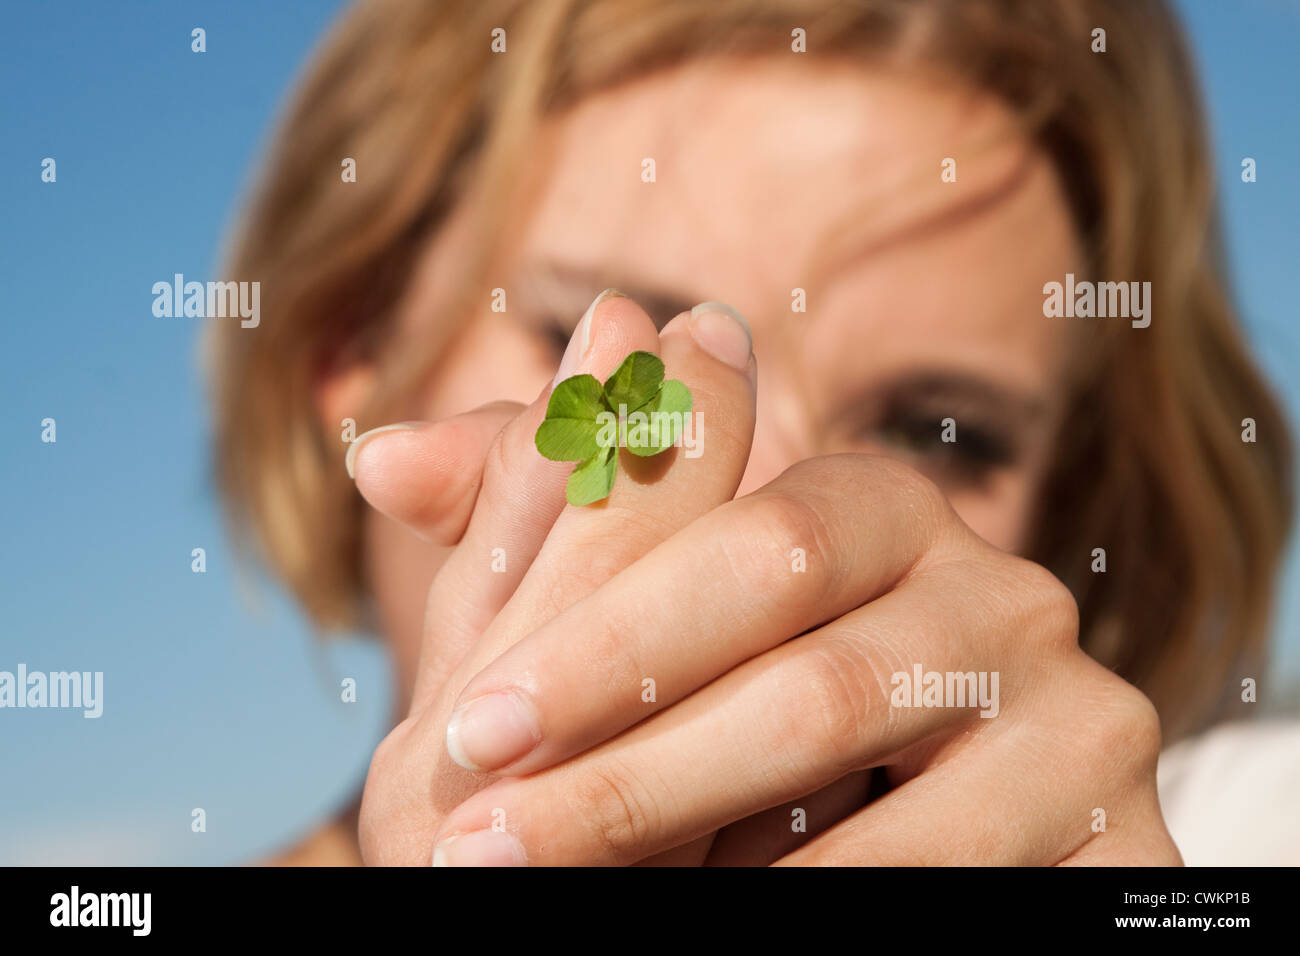 four leafed clover - Stock Image